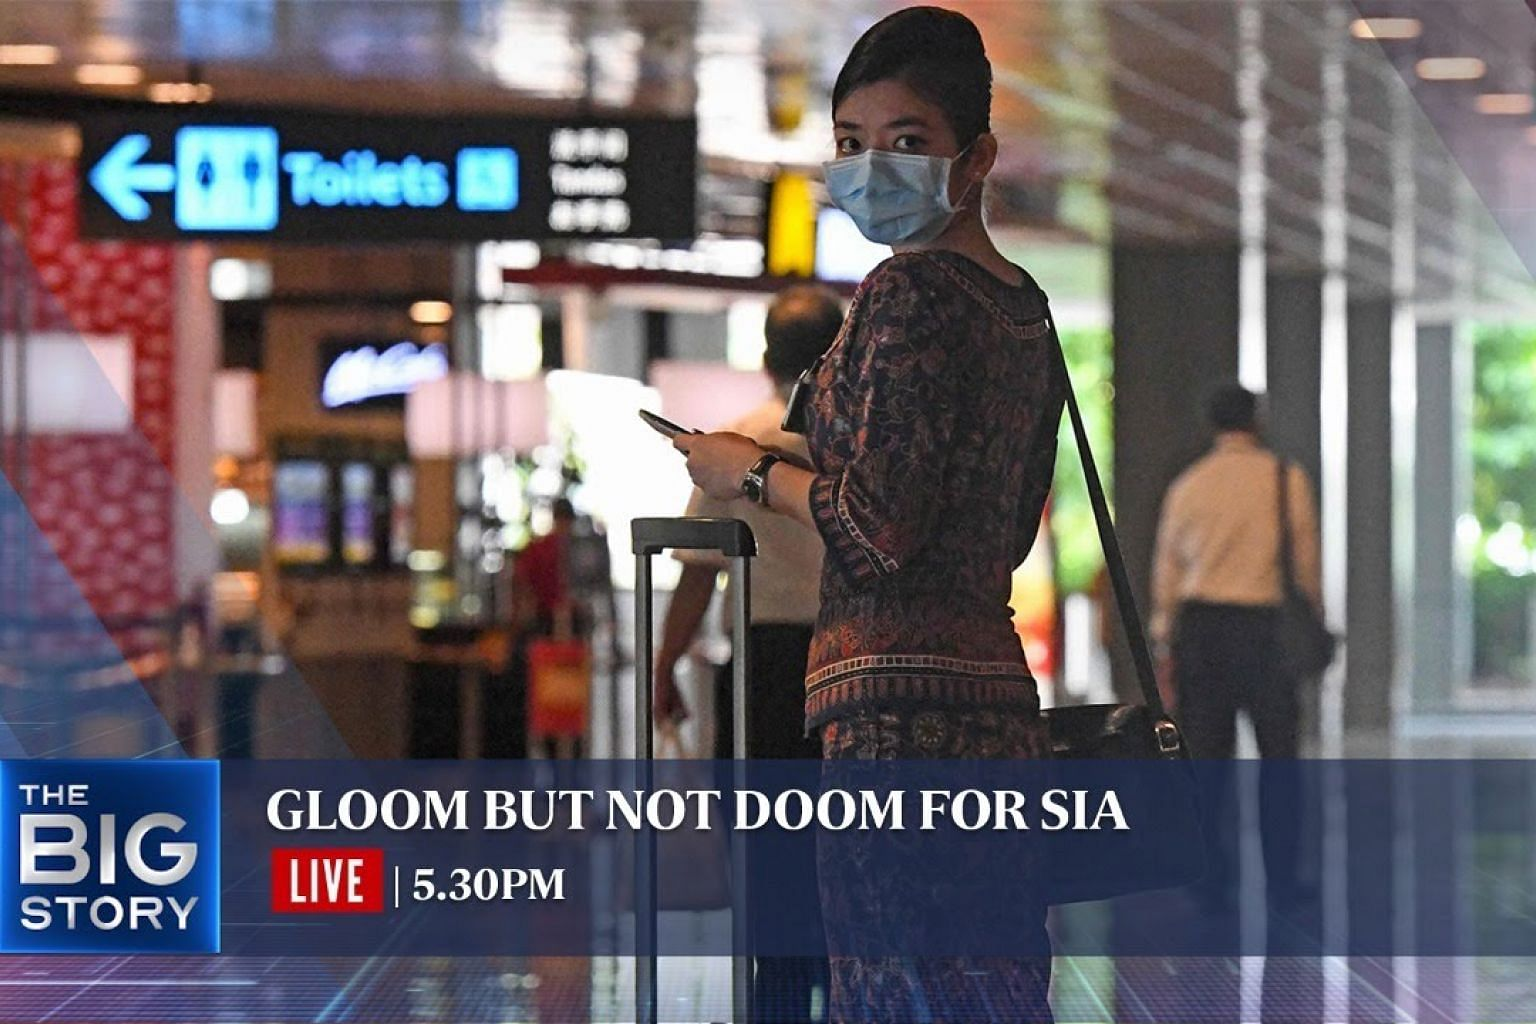 Gloom but not doom for SIA even as it retrenches 2,400 staff   Life's Food Picks   THE BIG STORY